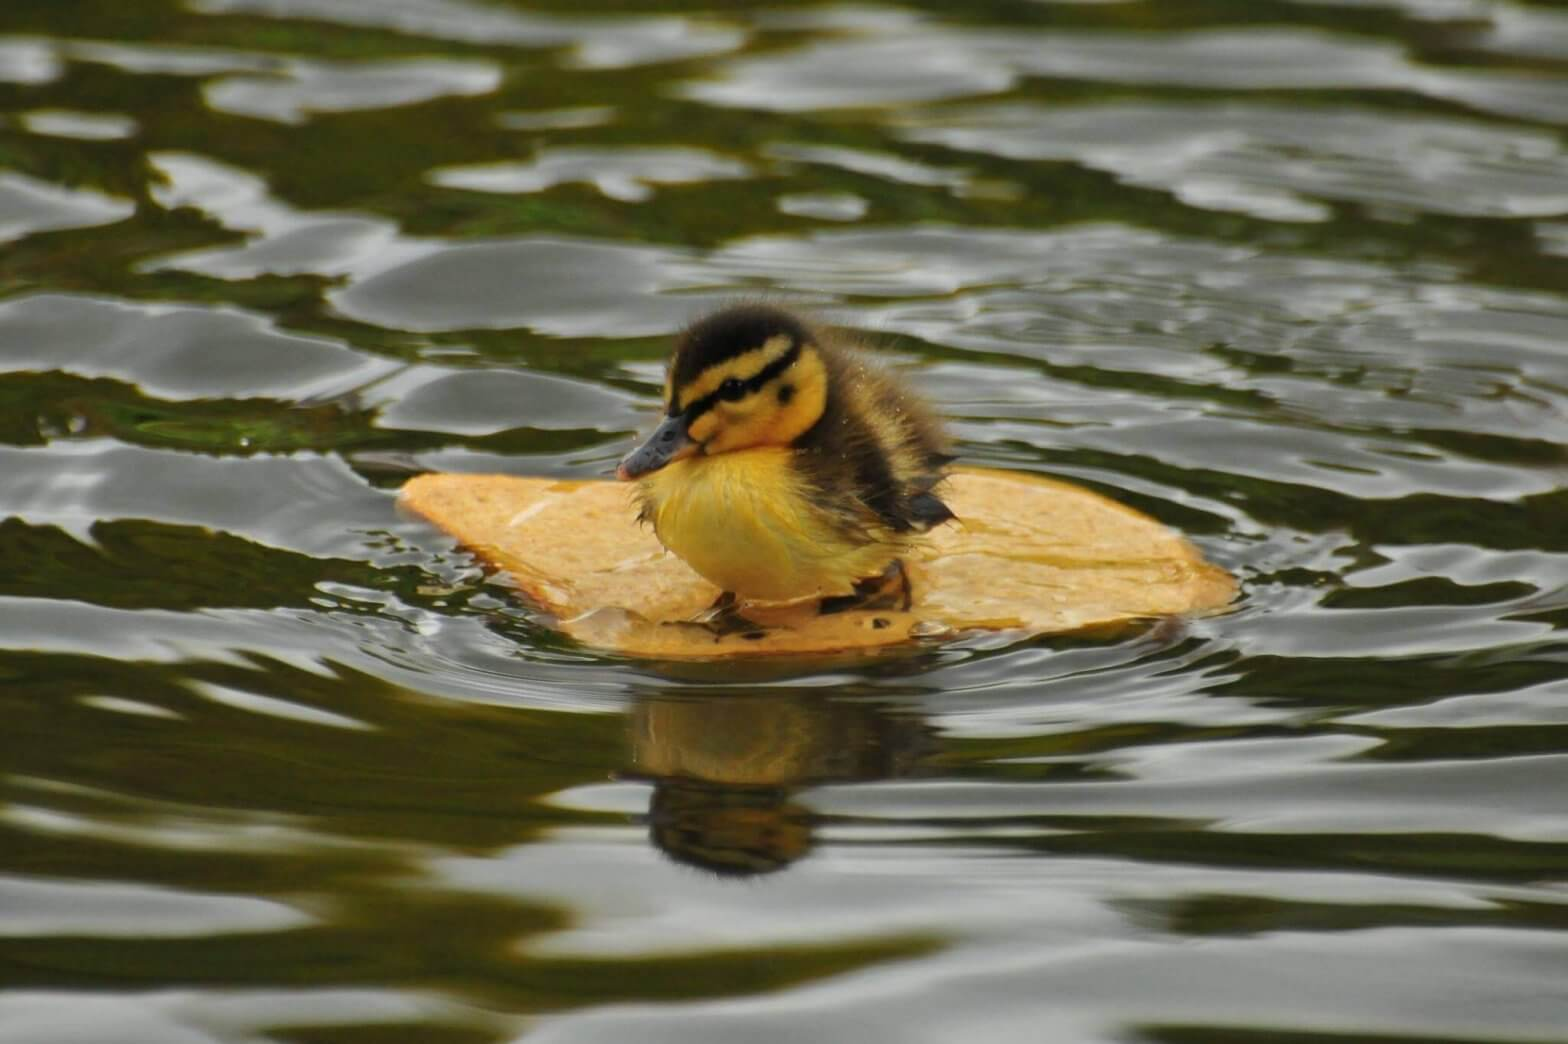 A duckling floating on a piece of bread at Walton Hall and Gardens. Picture by Darren Moston. Part of the Children's Zoo gallery.